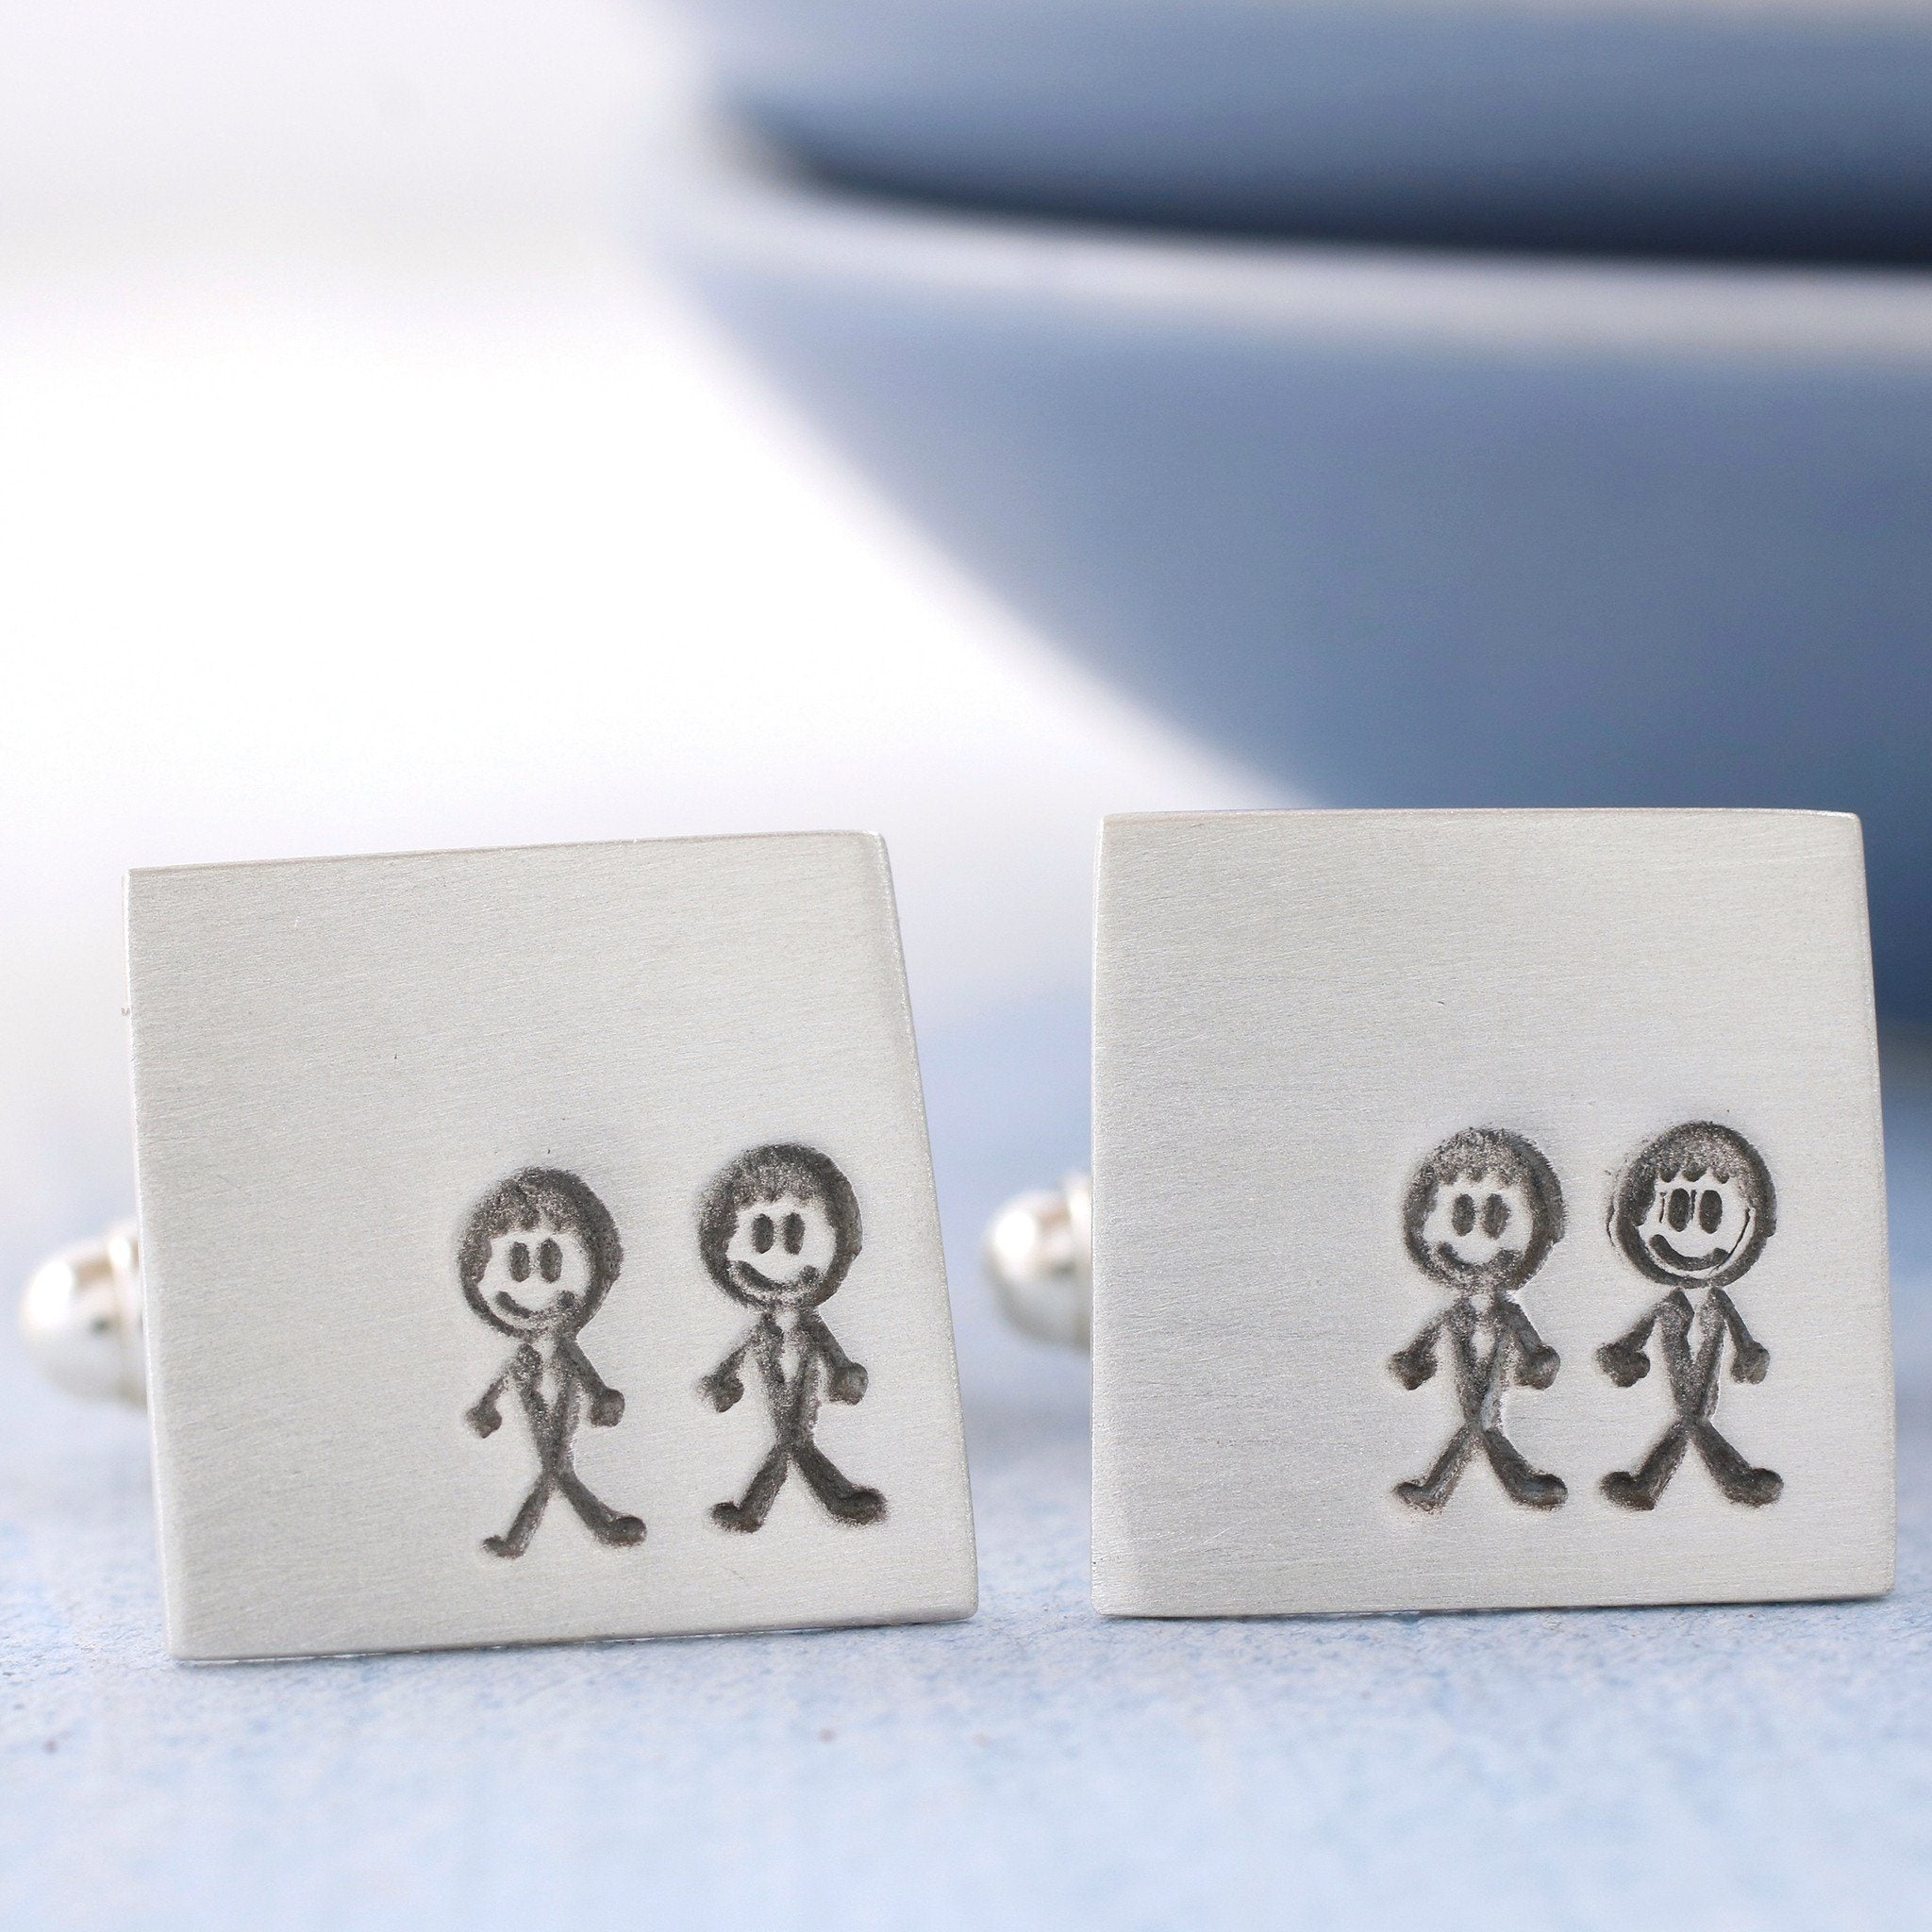 Groom and groom wedding cufflinks